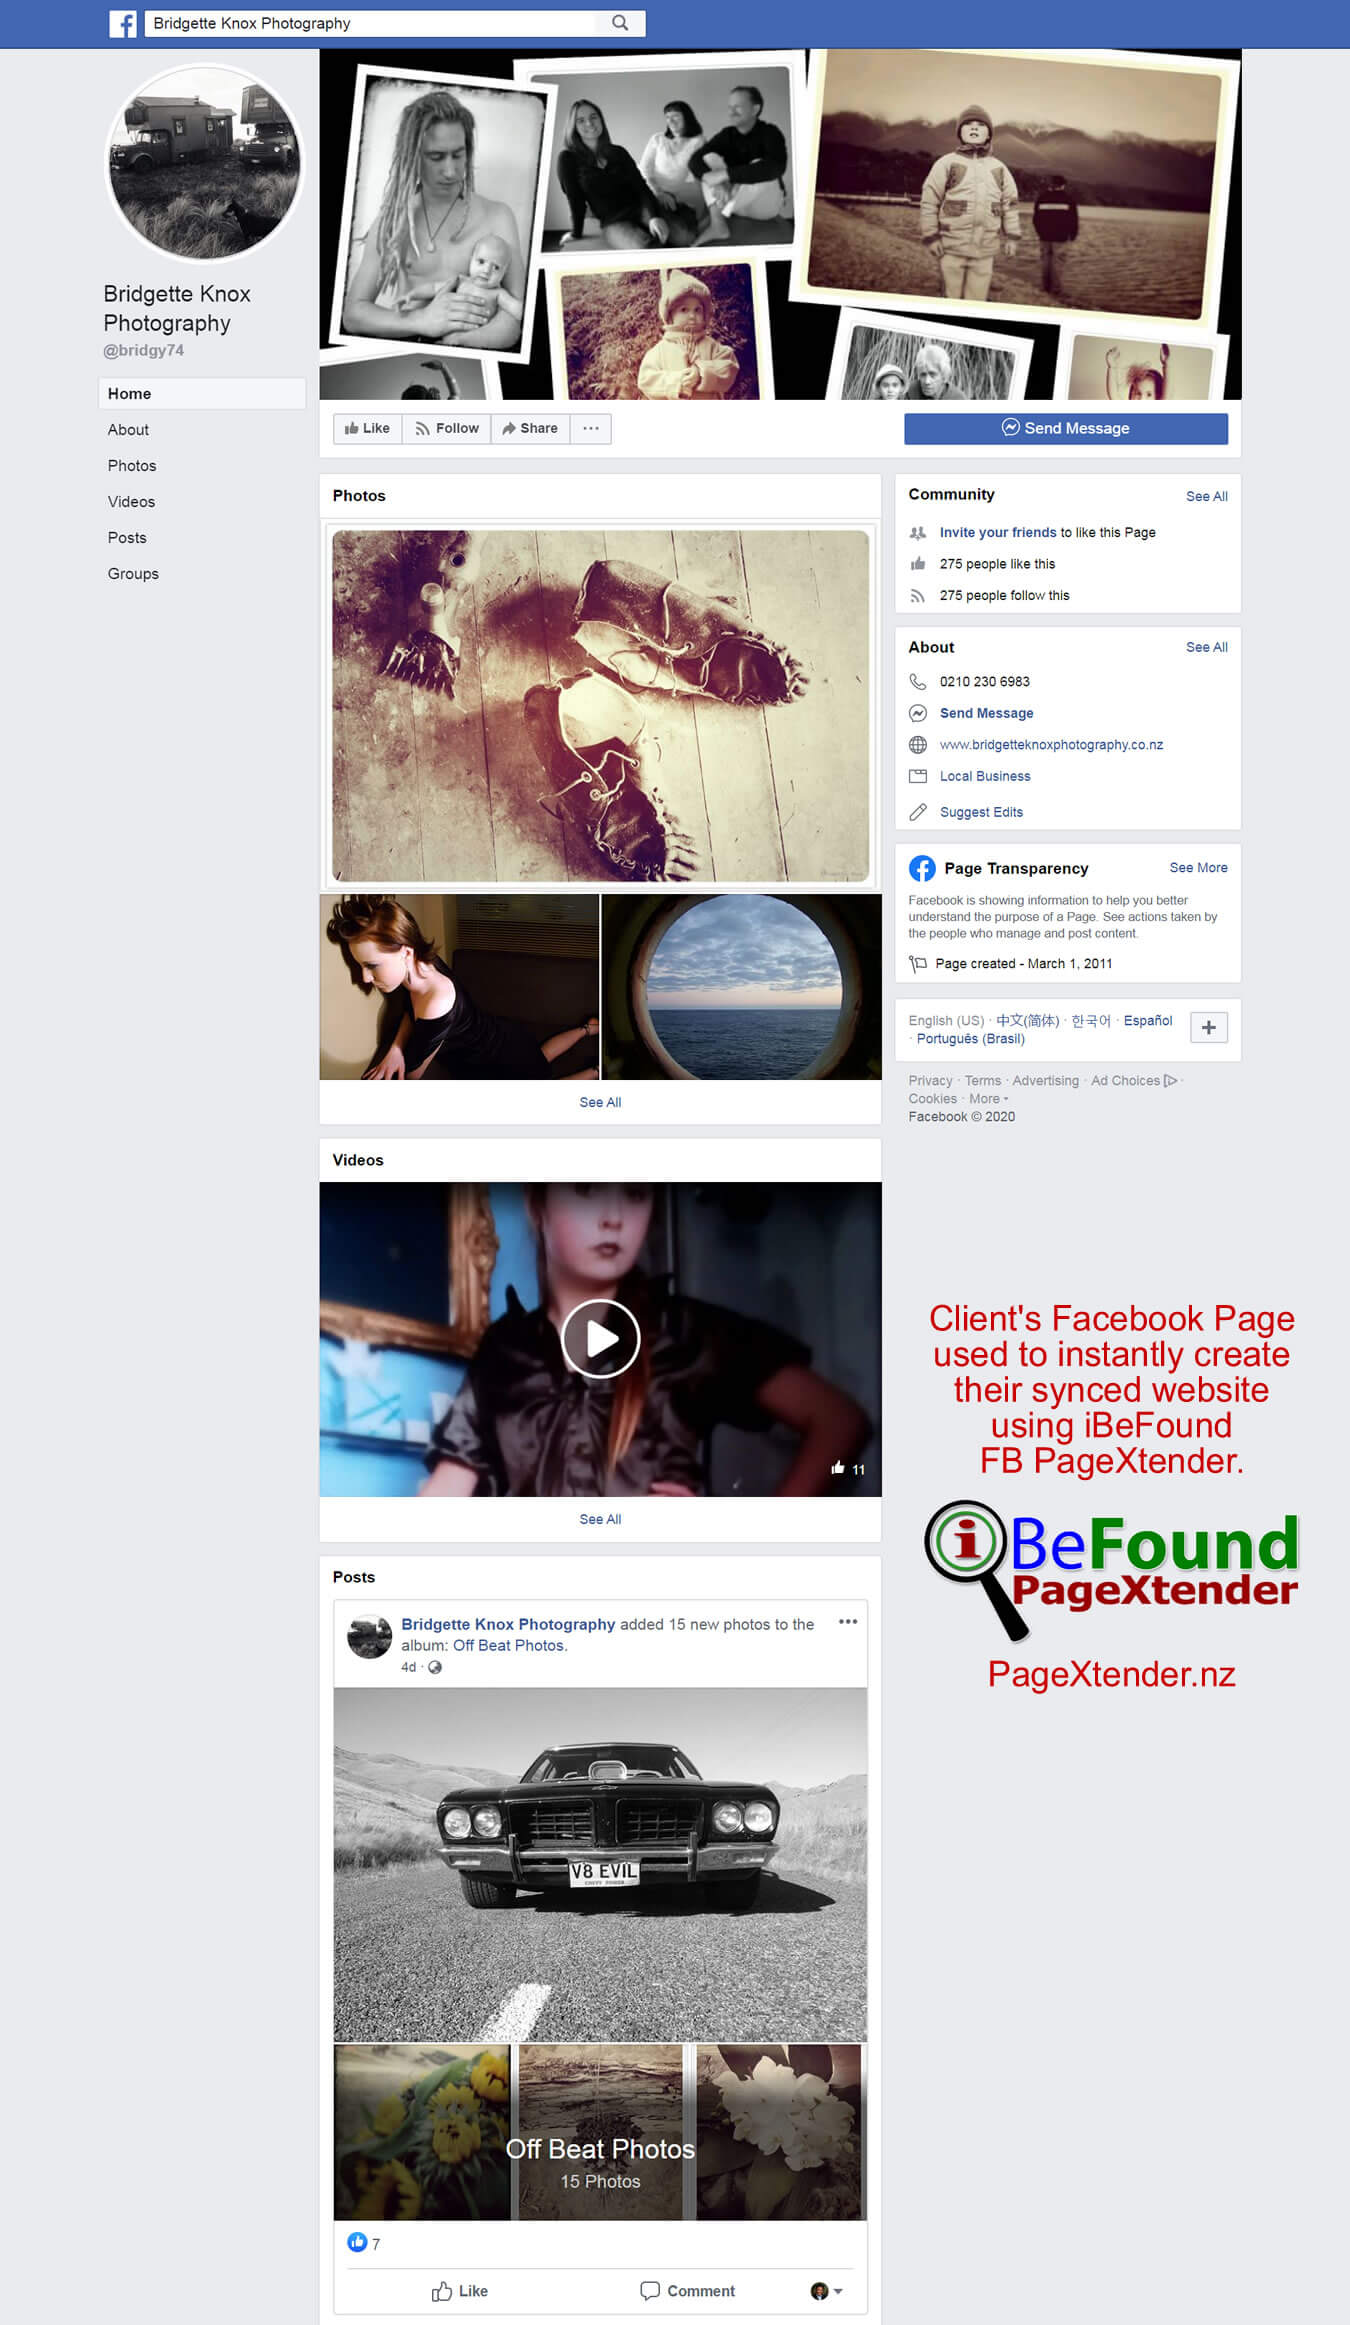 FB Page Of Bridgette Knox Photography Used For Instant Site Creation By IBeFound PageXtender NZ